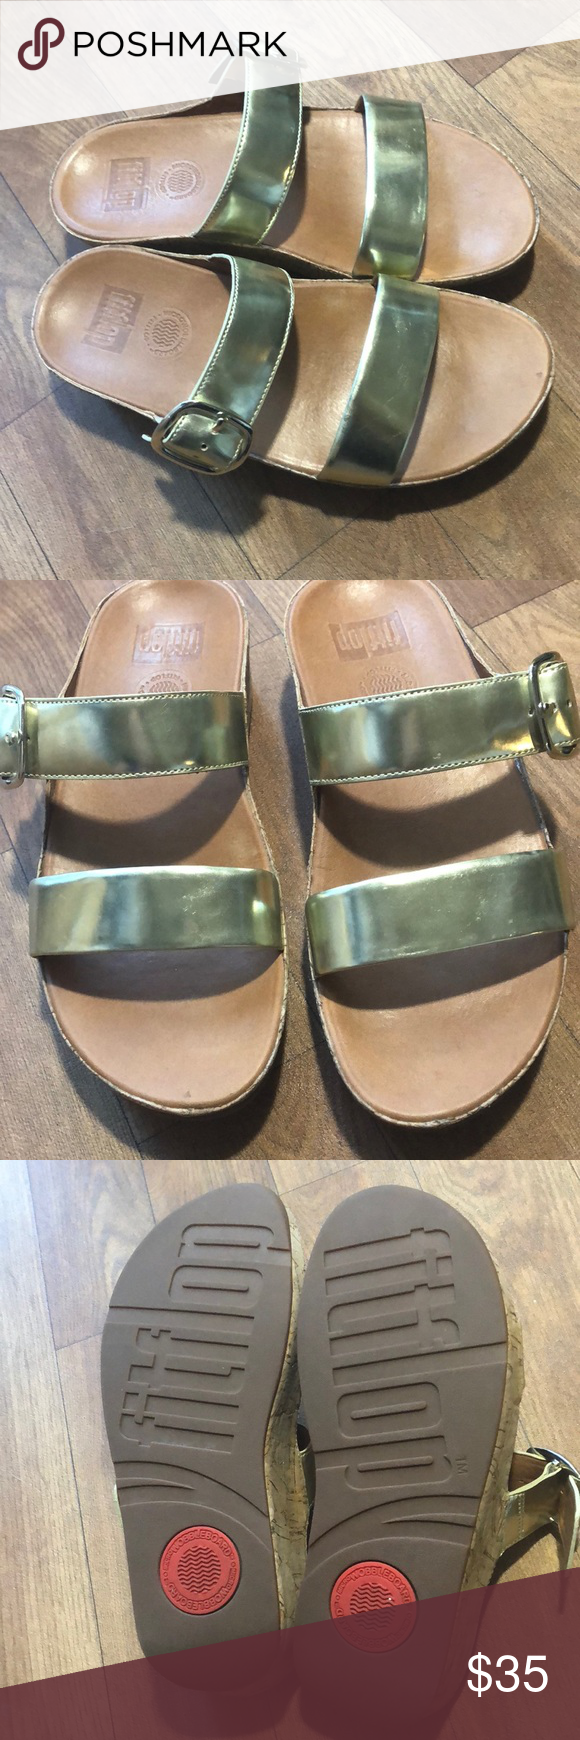 4e2f82bfc006e1 Fitflop Gold Slide Sandals Size  7 Color  gold Great condition! No rips or  stains. Fitflop Shoes Sandals